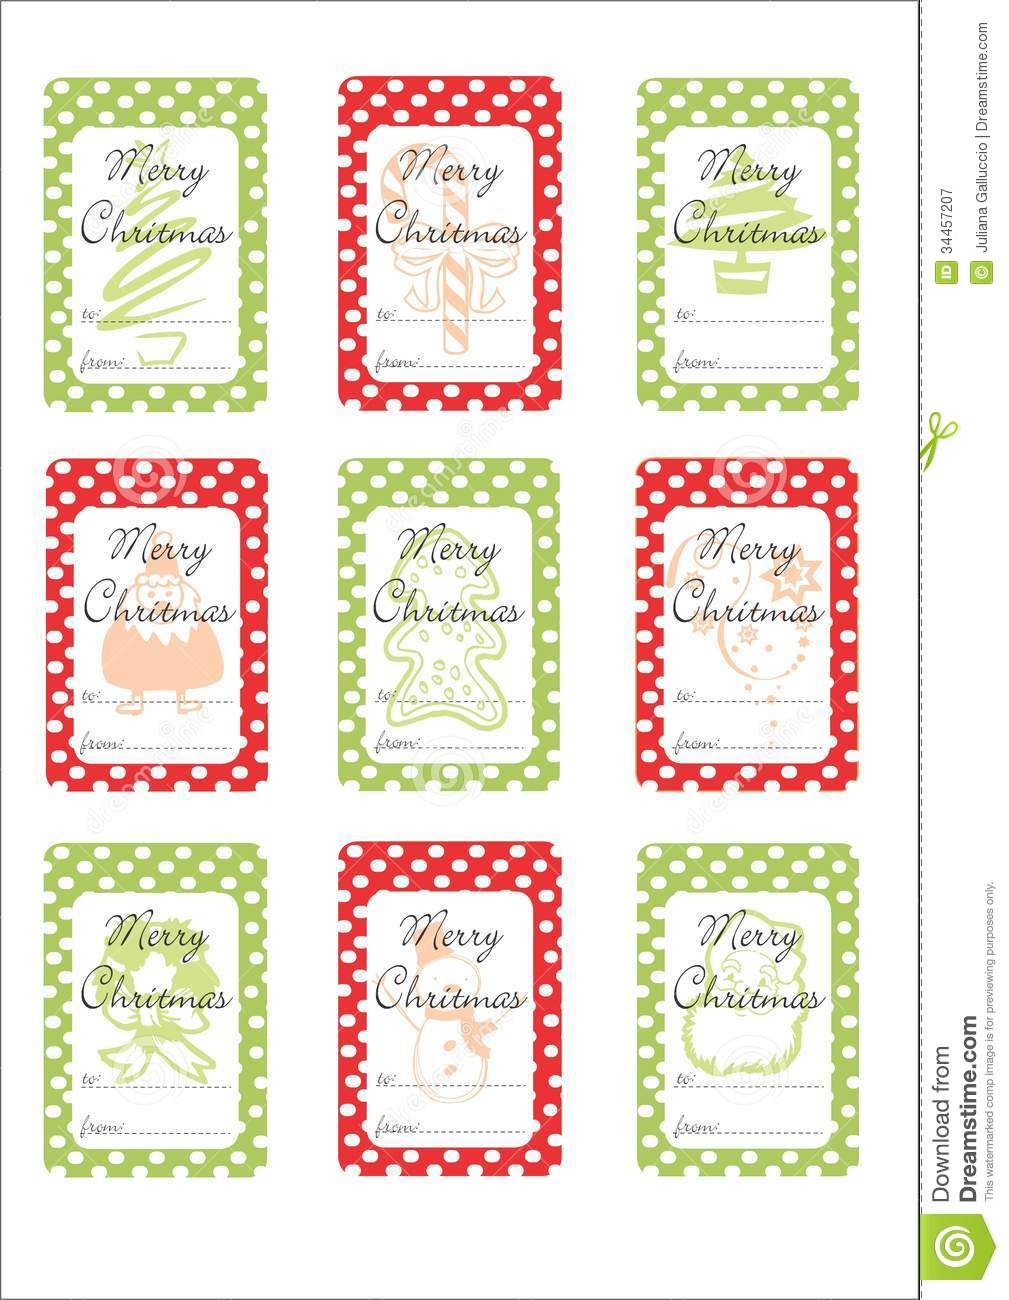 Chritmas Gift Tags Royalty Free Stock Photography - Image: 34457207